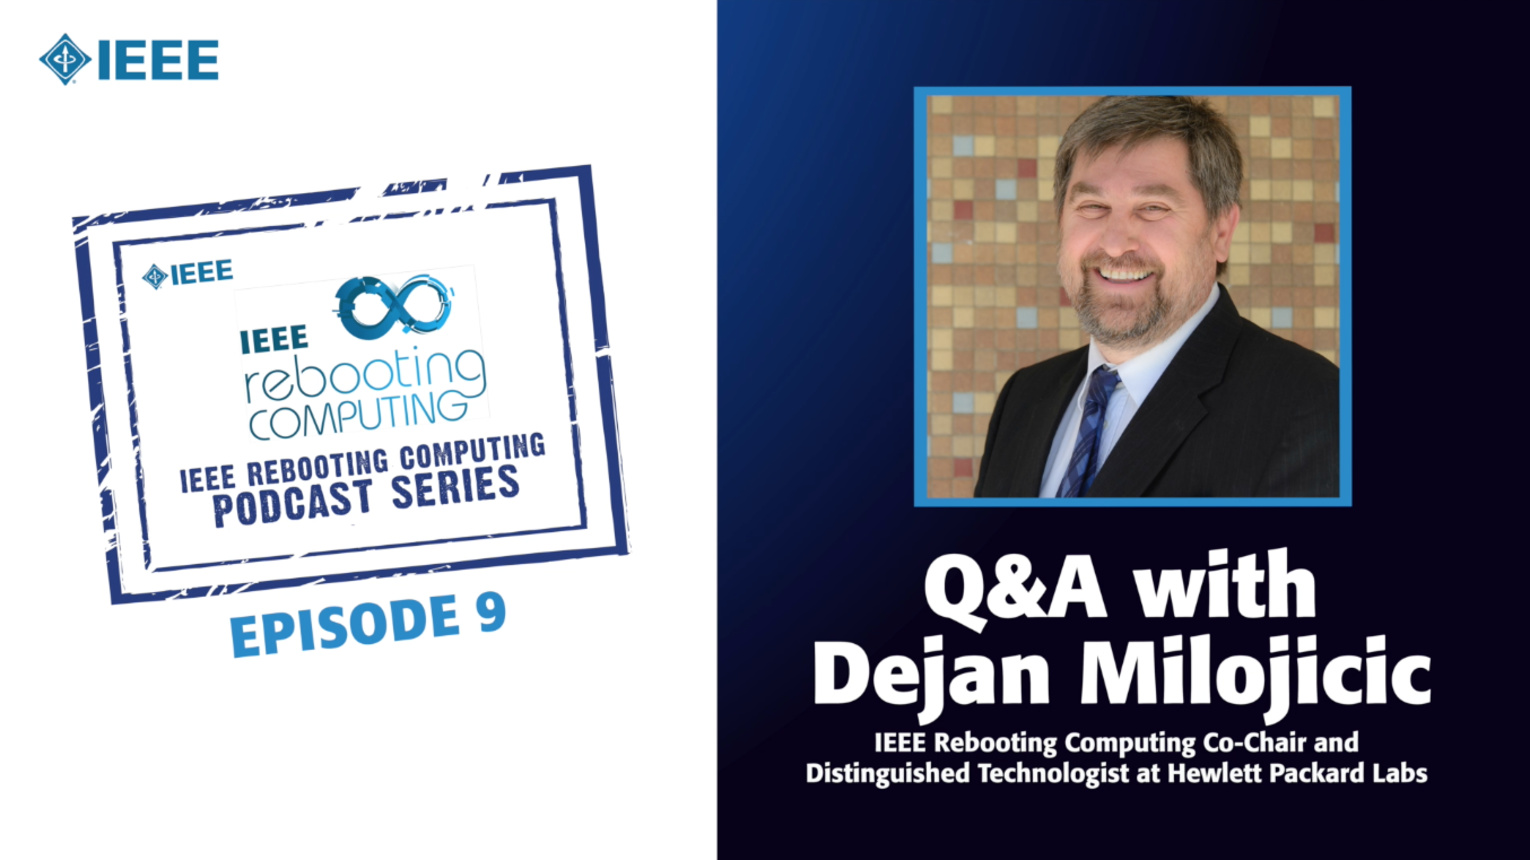 Q&A with Dejan Milojicic: IEEE Rebooting Computing Podcast, Episode 9